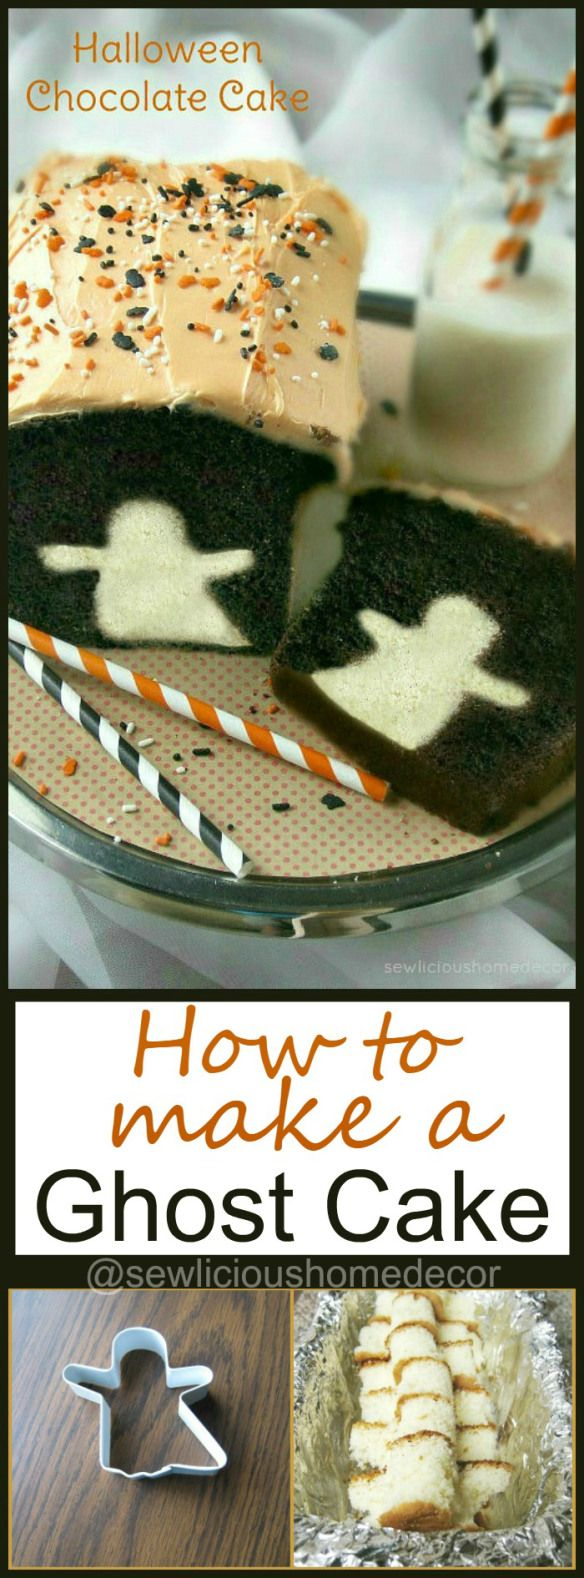 How To Make A Halloween Ghost Cake.